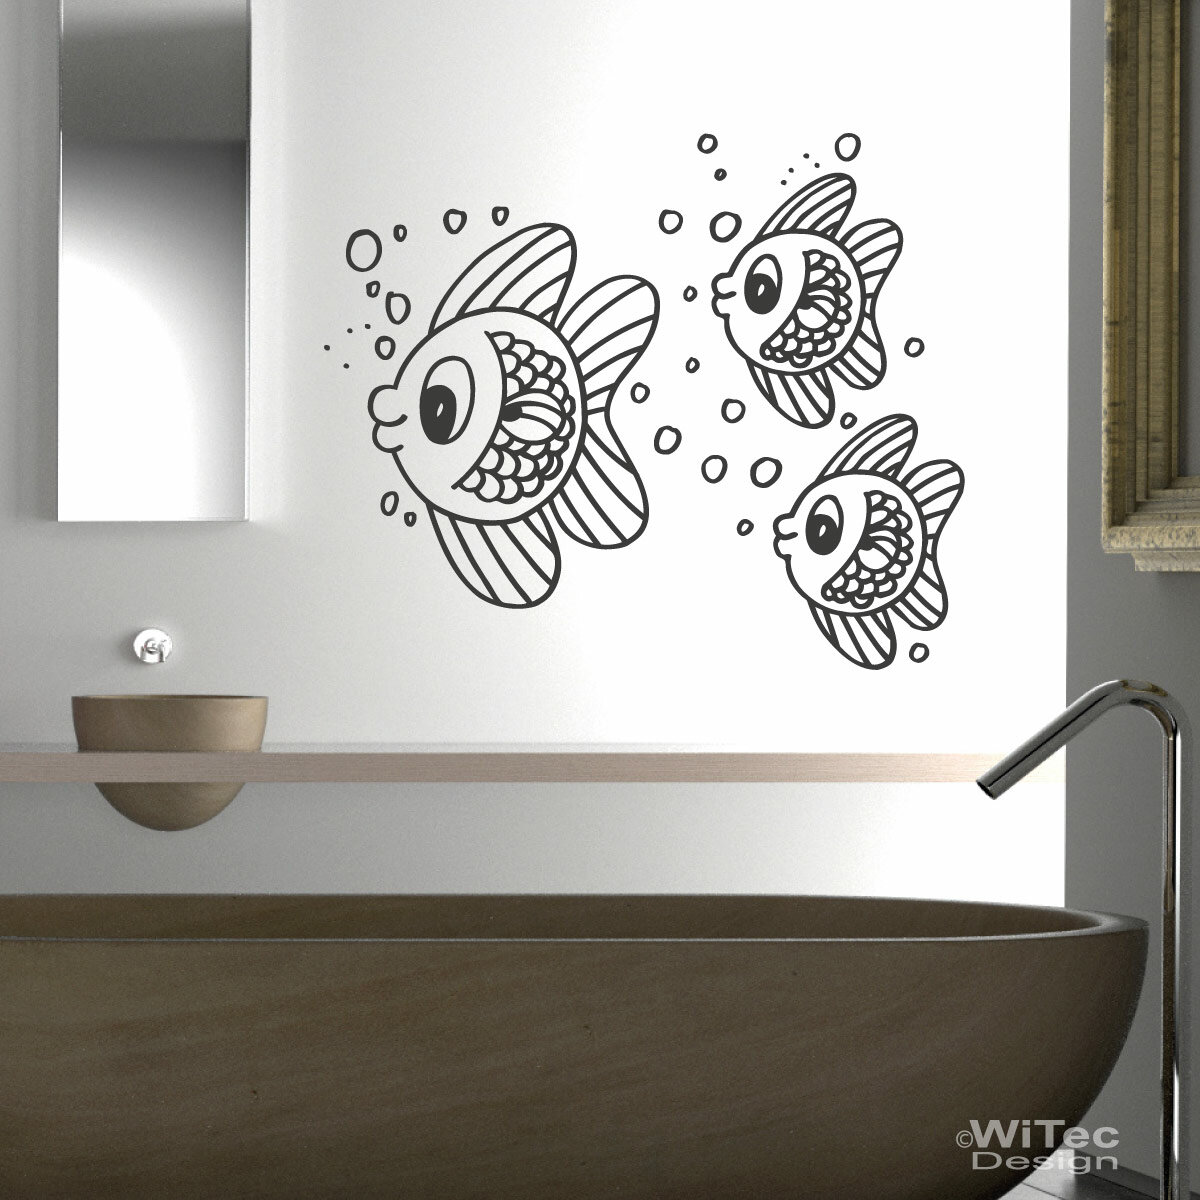 wandtattoo badezimmer fischschwarm wandaufkleber fische. Black Bedroom Furniture Sets. Home Design Ideas